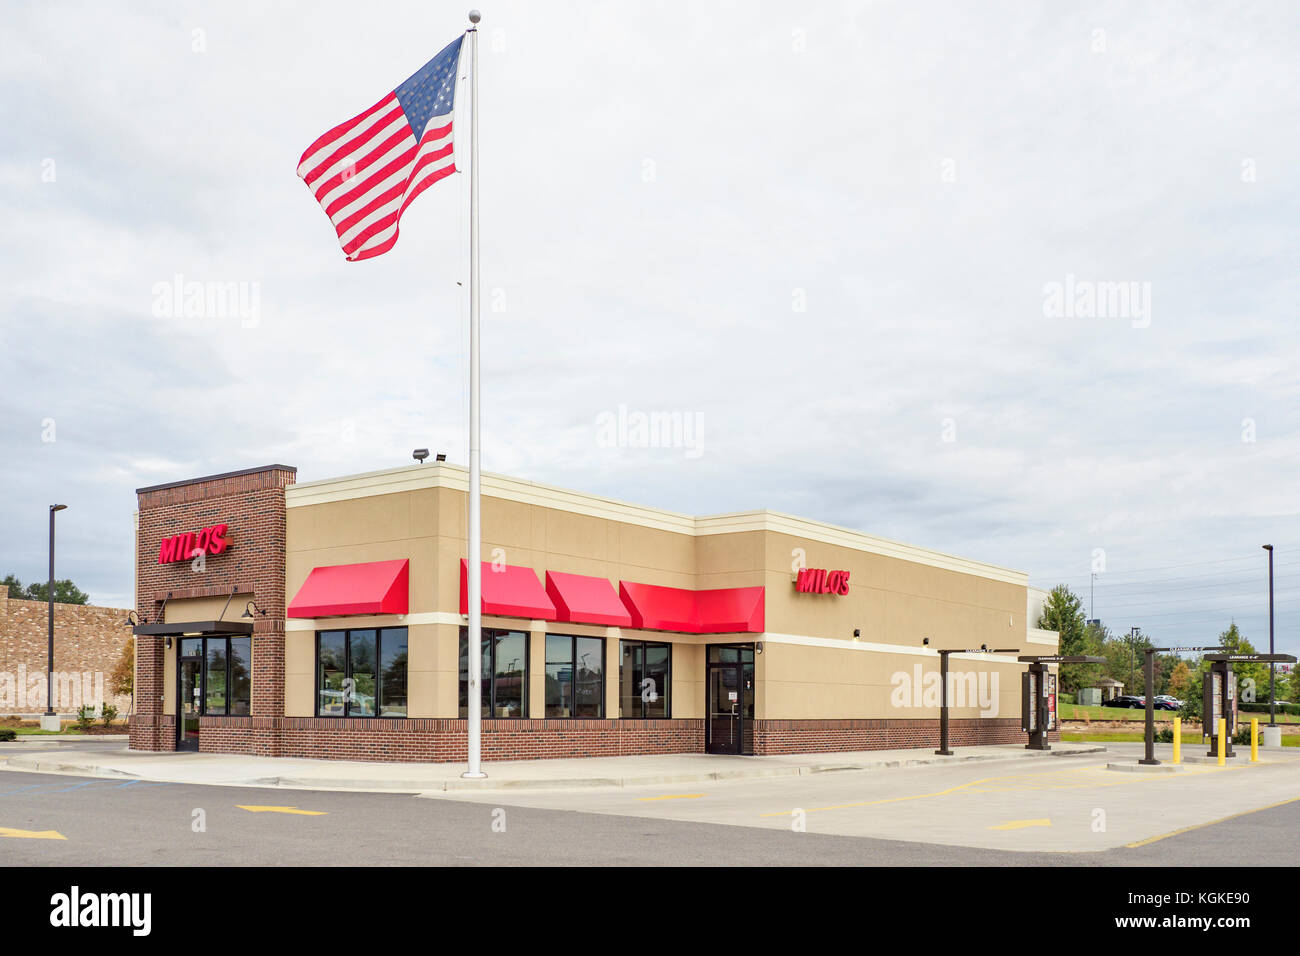 Milo's Hamburgers chain franchise hamburger fast food restaurant exterior in Montgomery, Alabama USA. Stock Photo